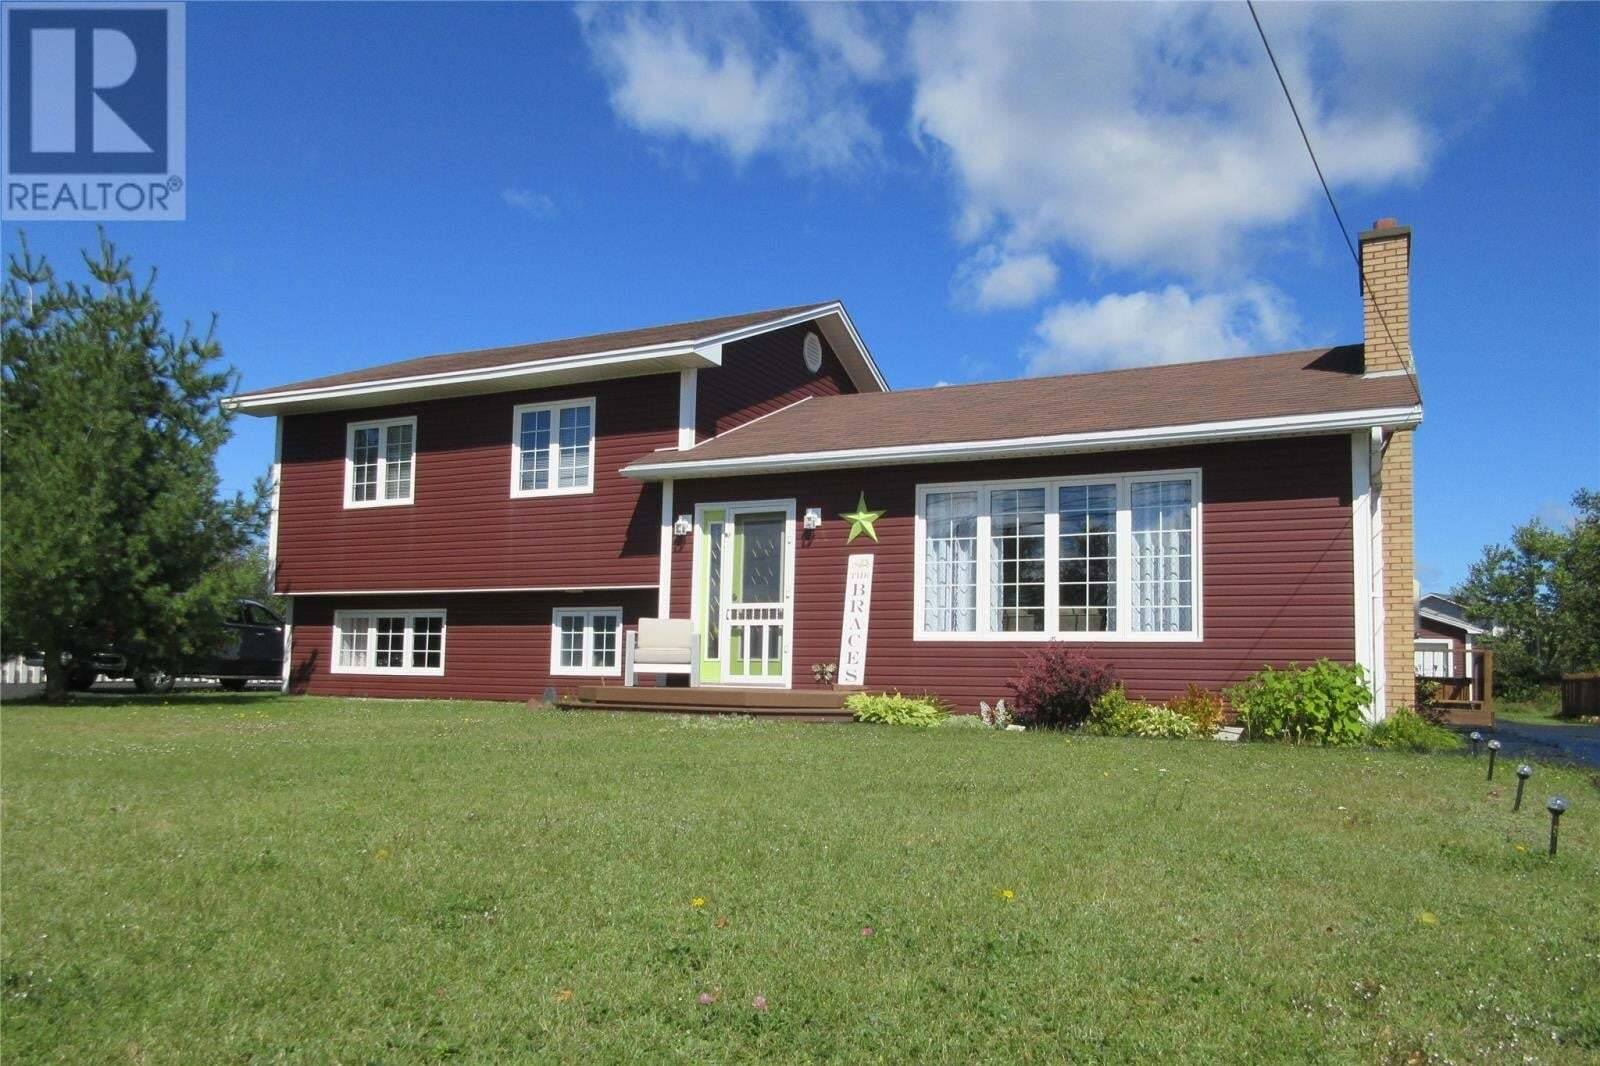 House for sale at 548 Main St Bishop's Falls Newfoundland - MLS: 1220762